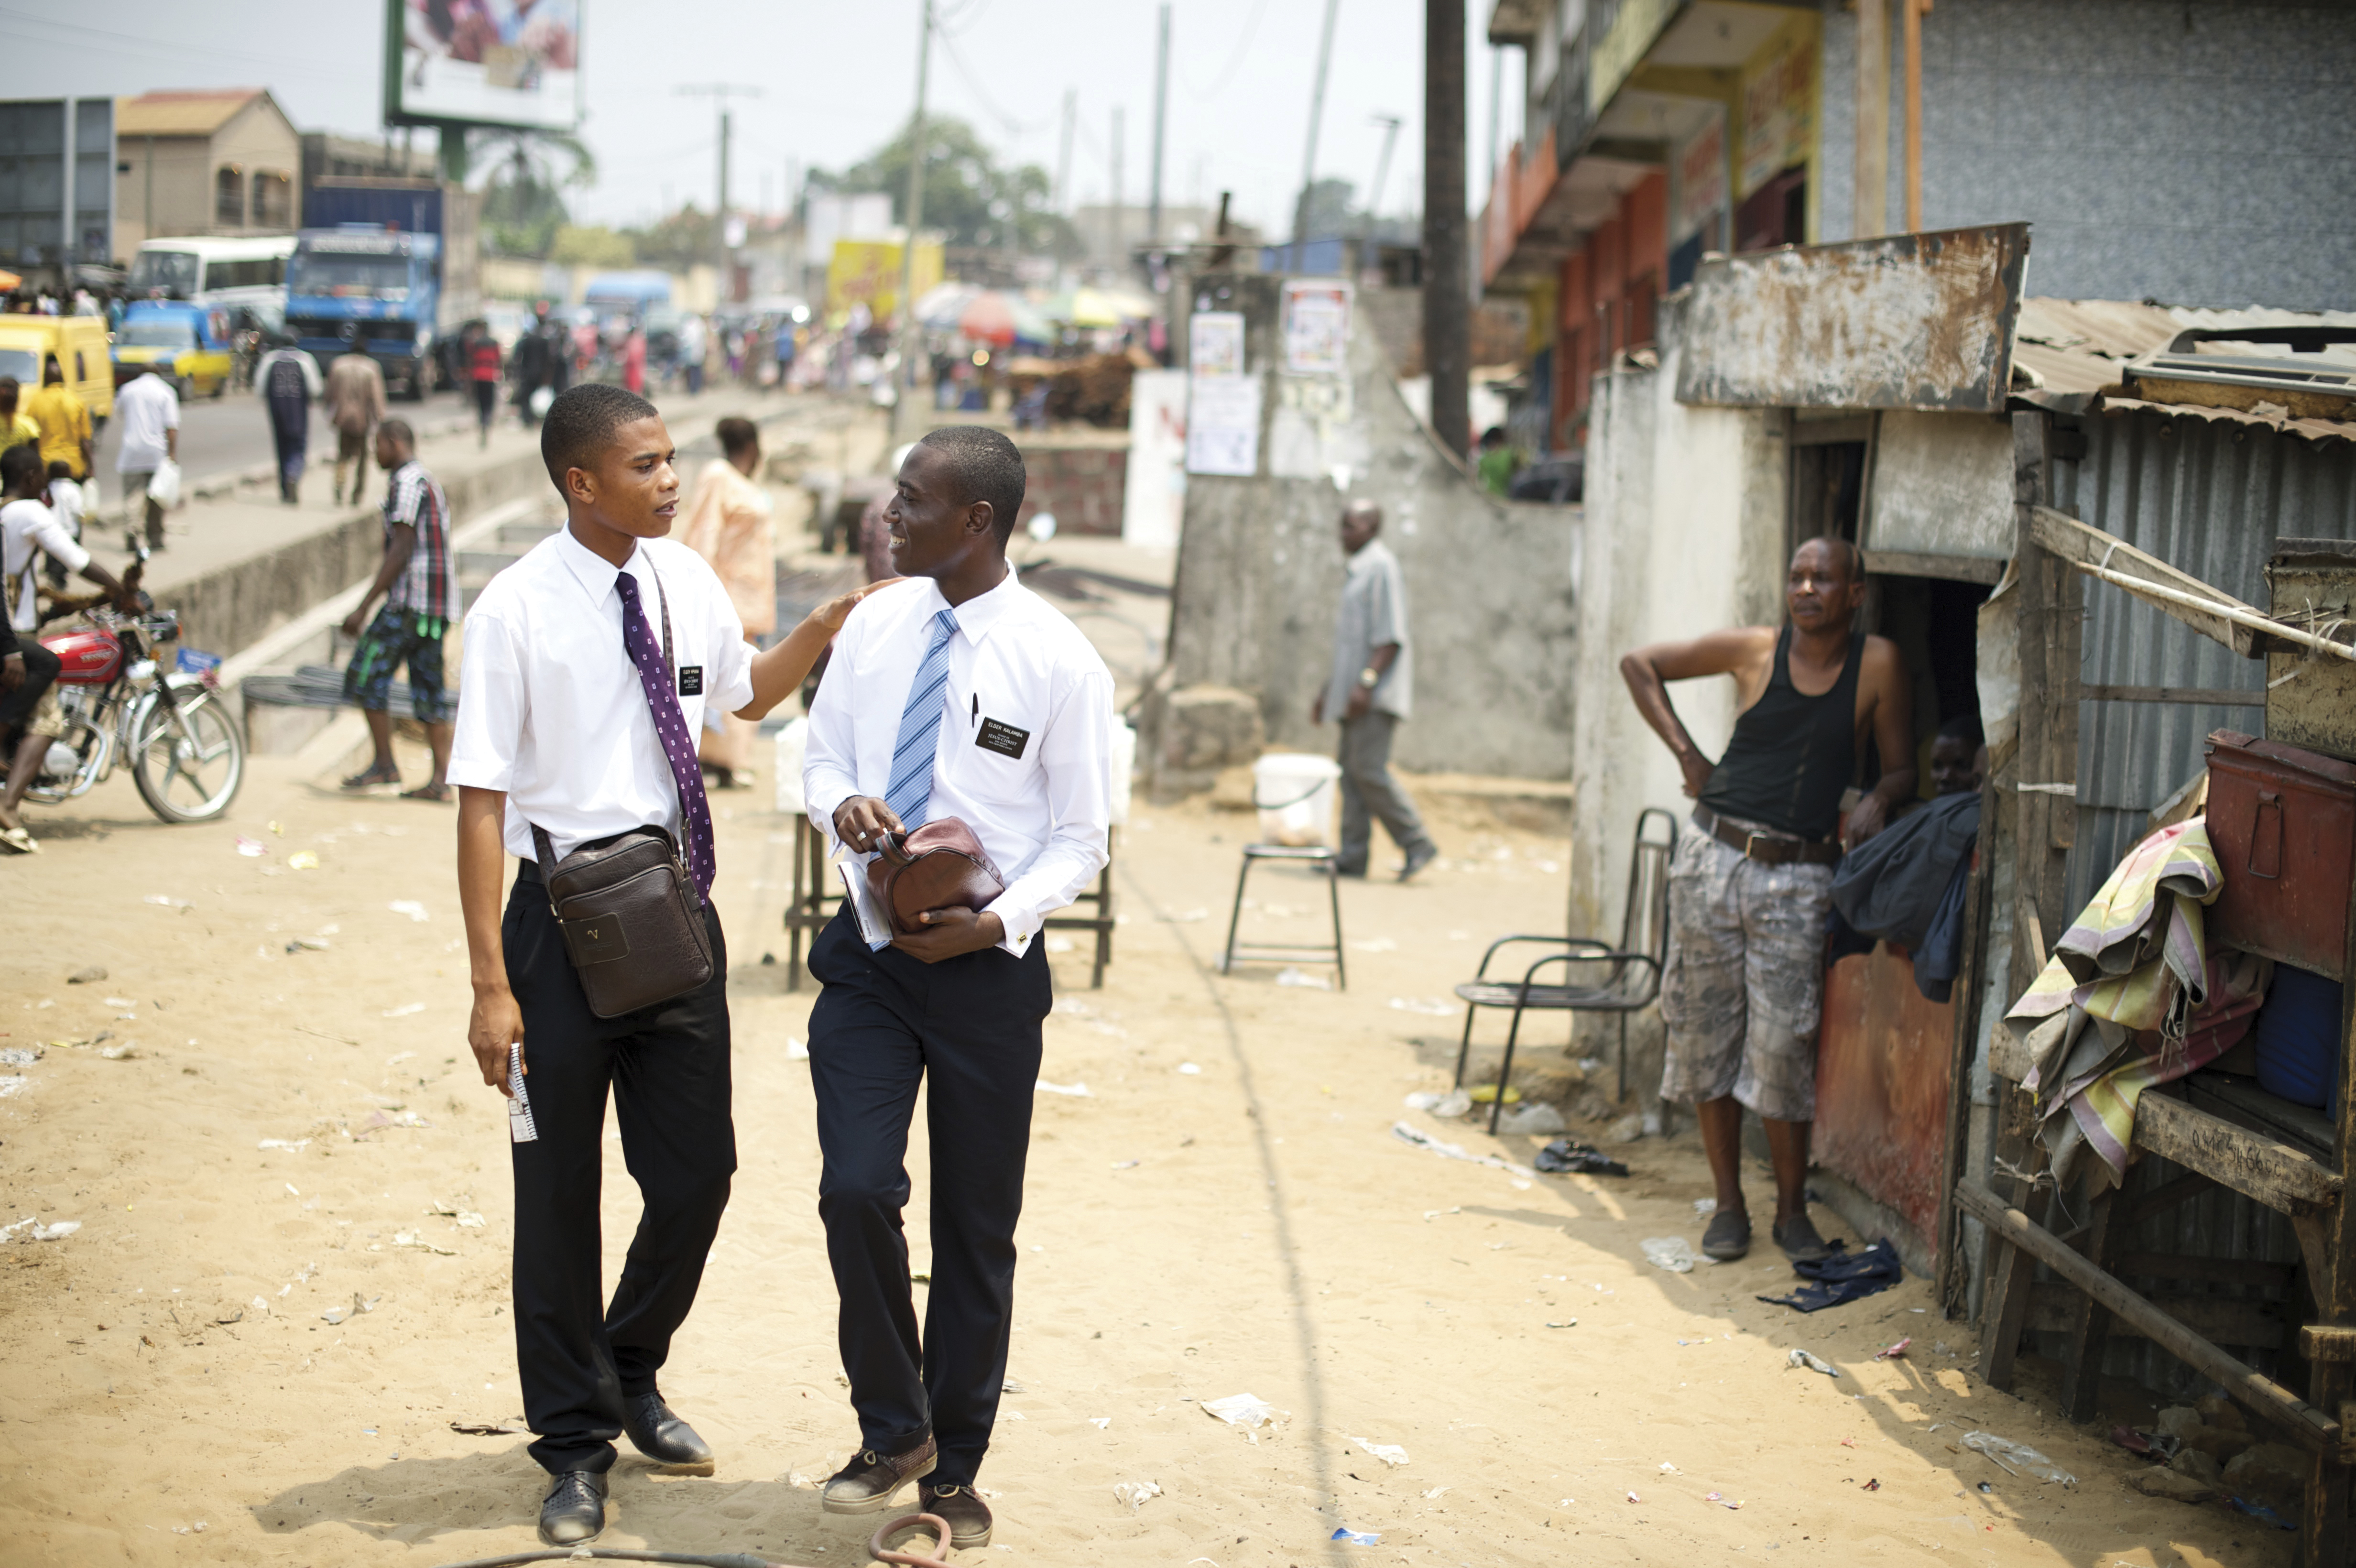 Two missionaries from Africa talking and walking down a street.